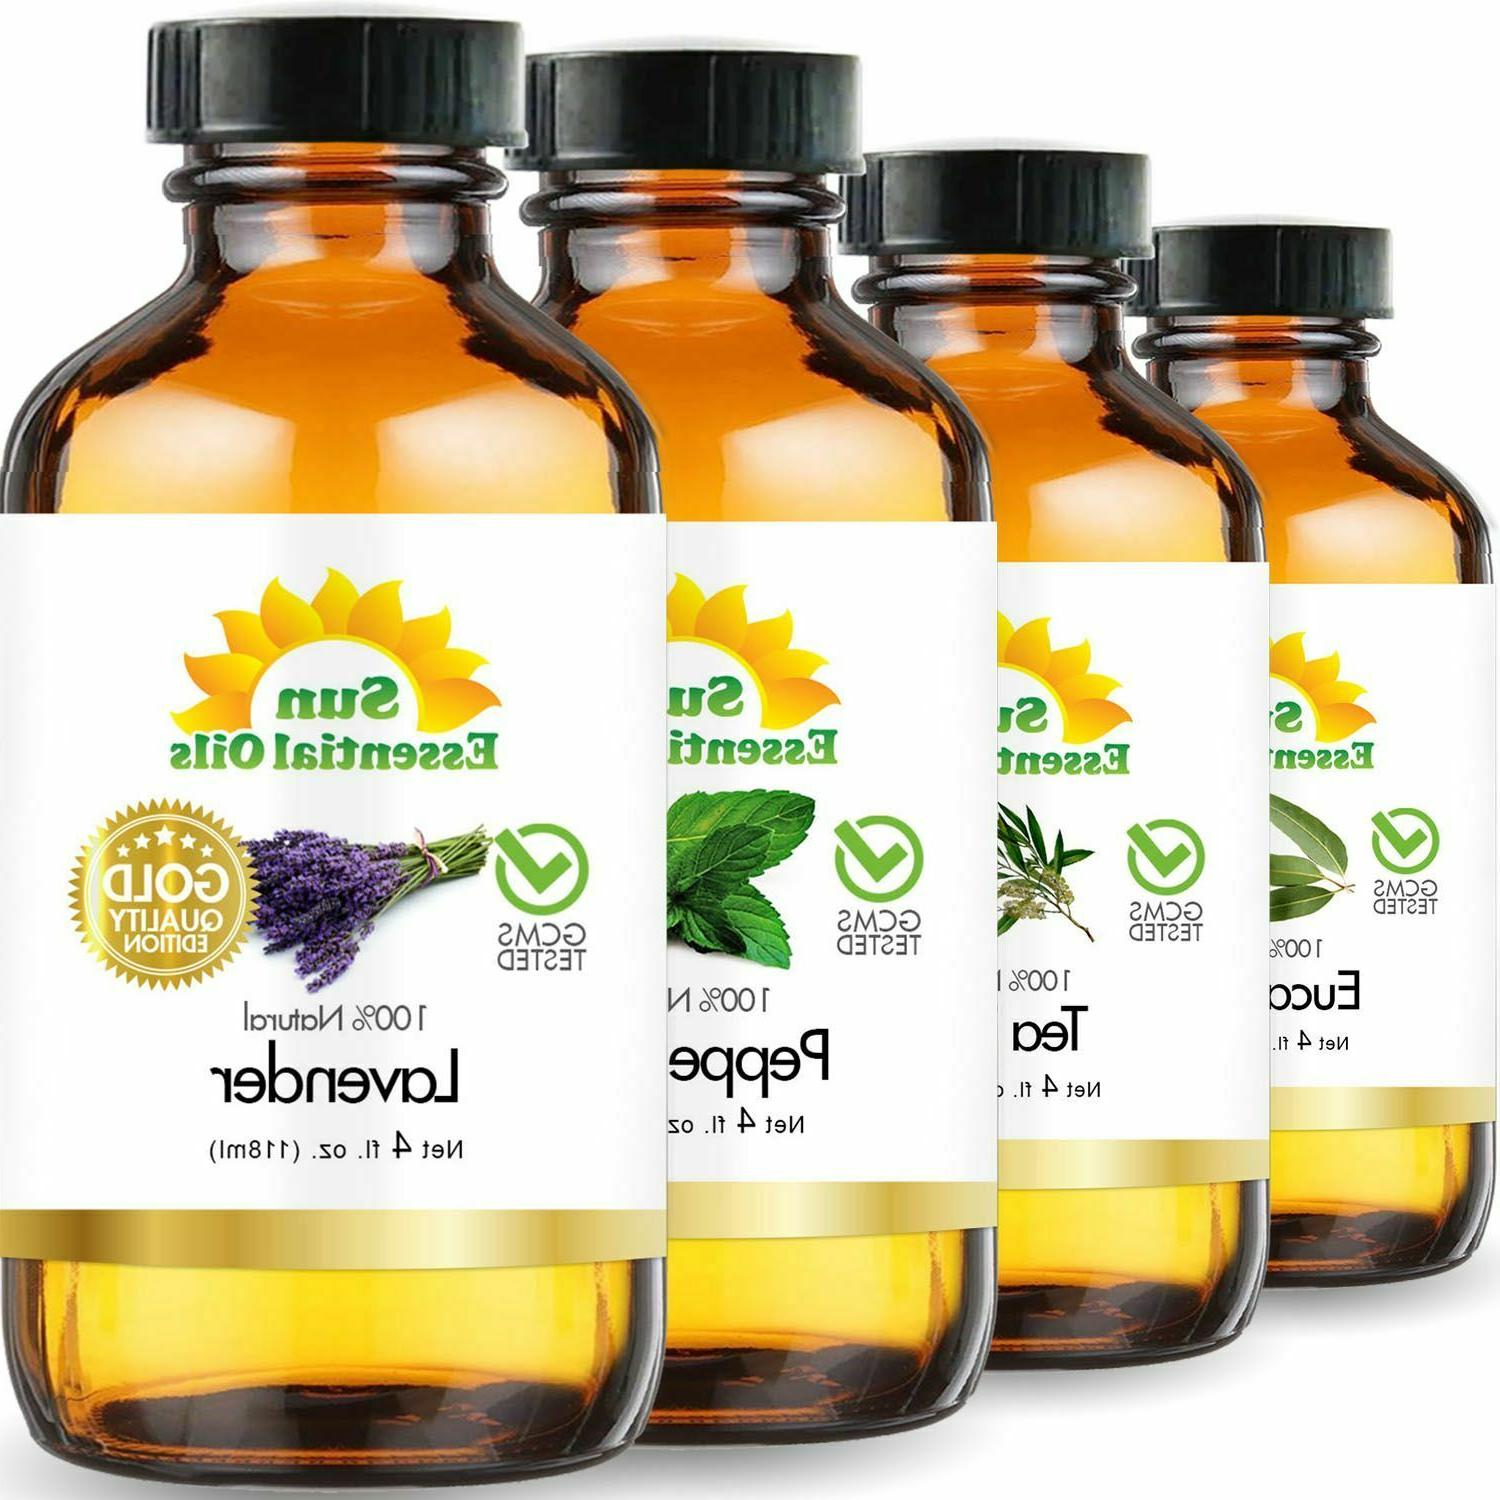 Essential - 100% Pure and Natural - Therapeutic Grade Oil!